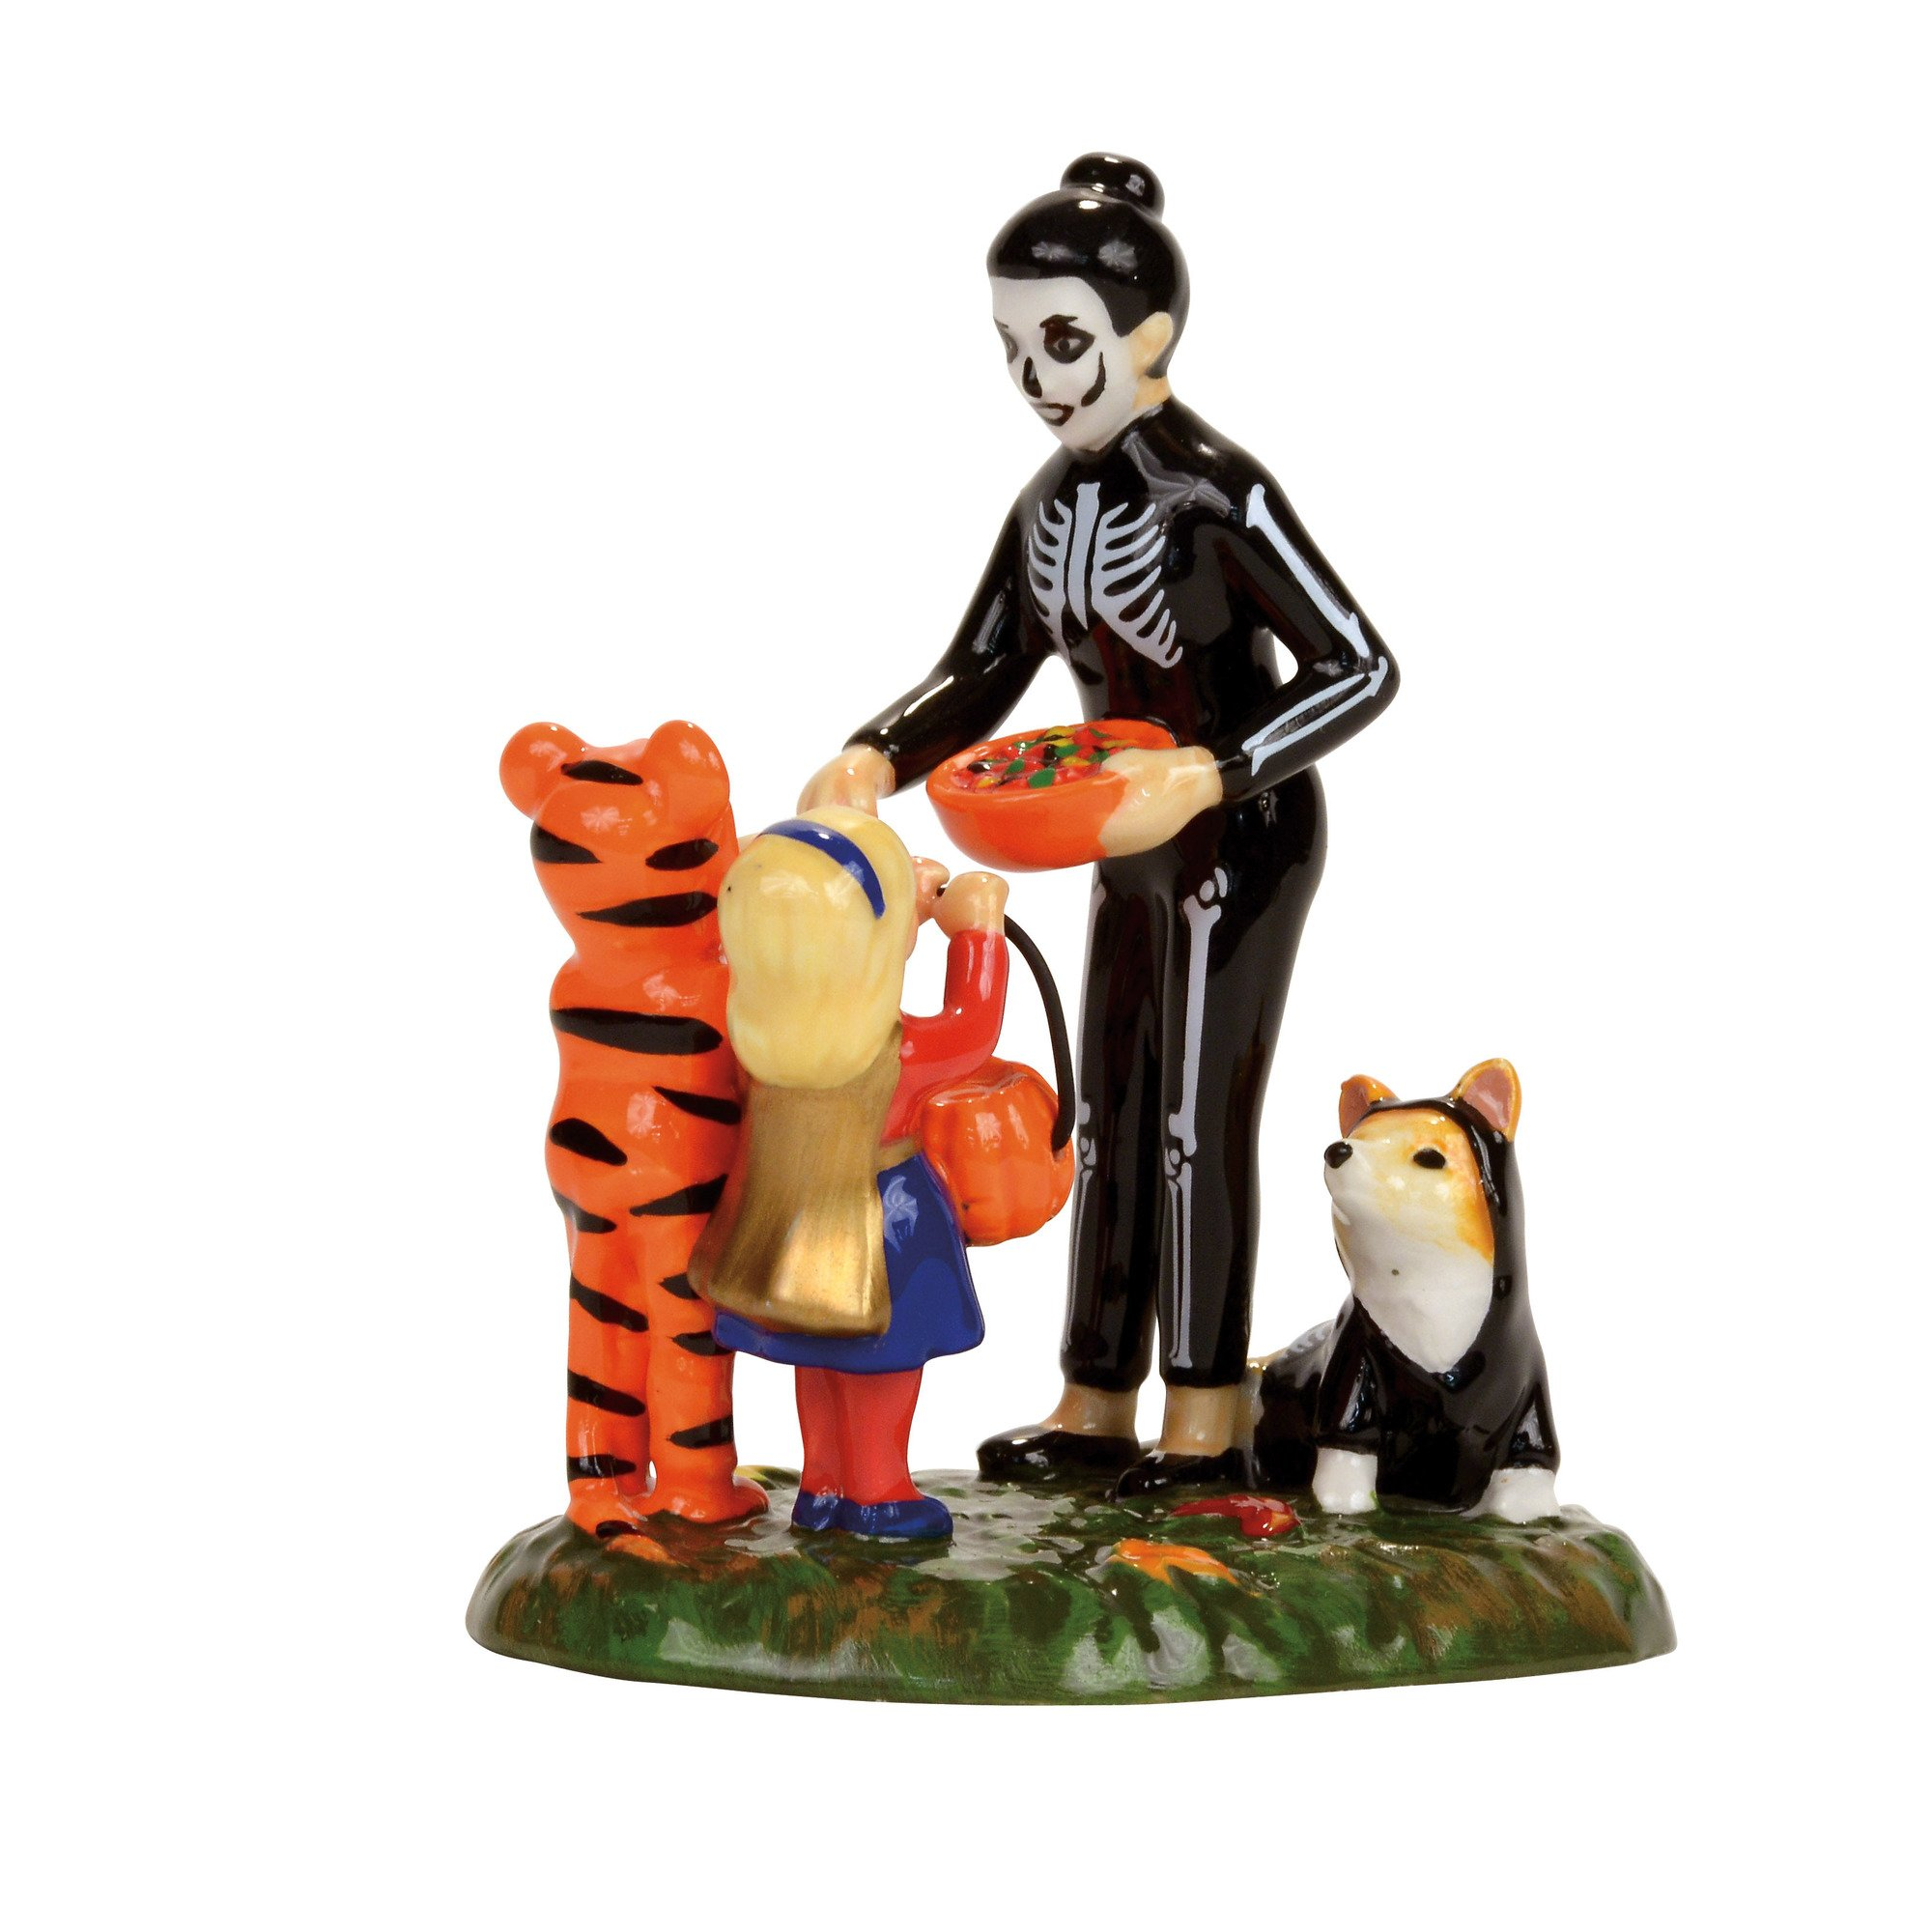 Department 56 Snow Village Halloween Trick or Treating on the Lane Accessory Figurine by Department 56 (Image #1)